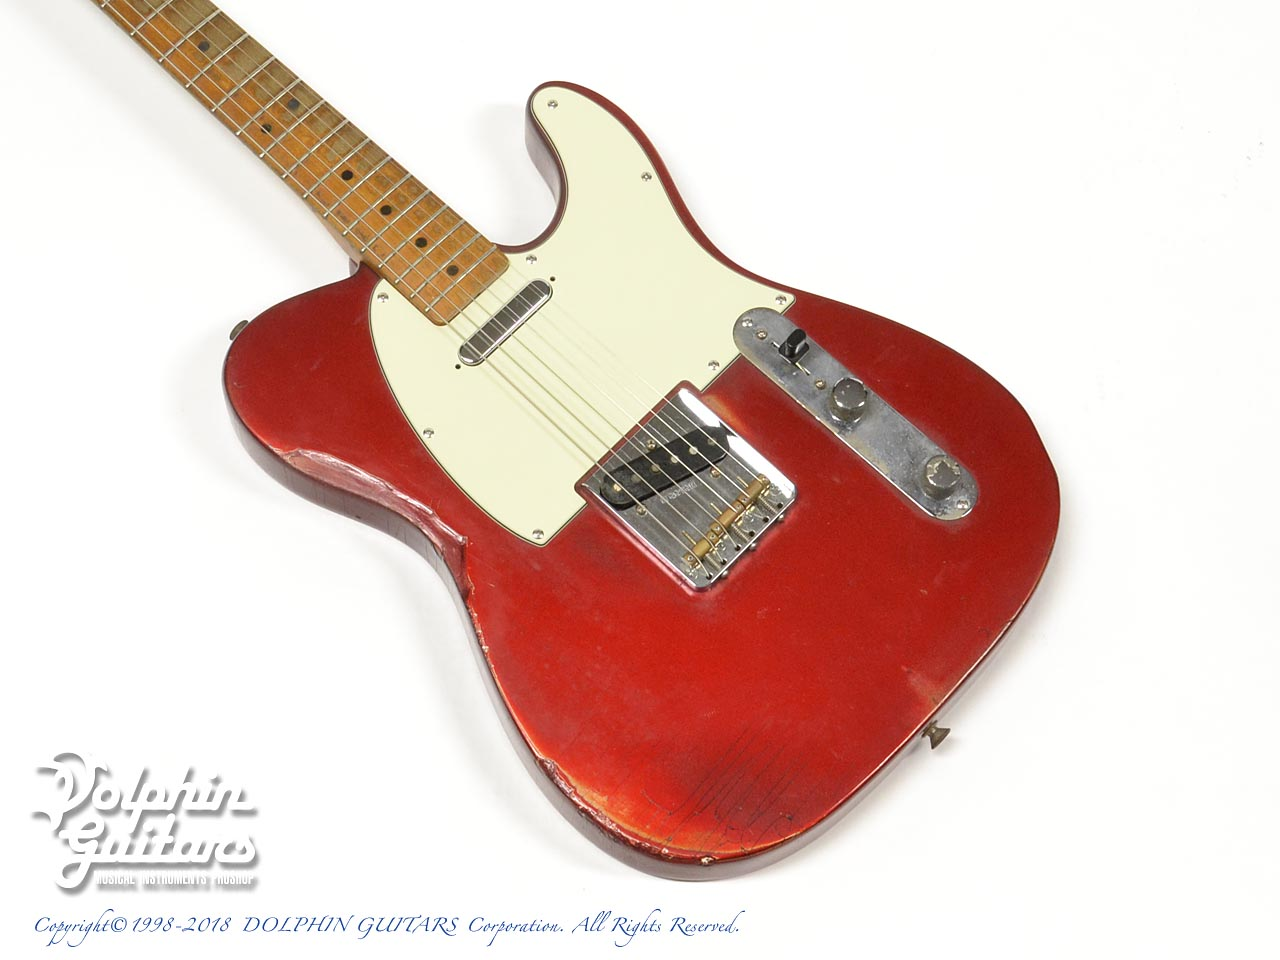 FENDER USA: Telecaster Candy Apple Red (1)